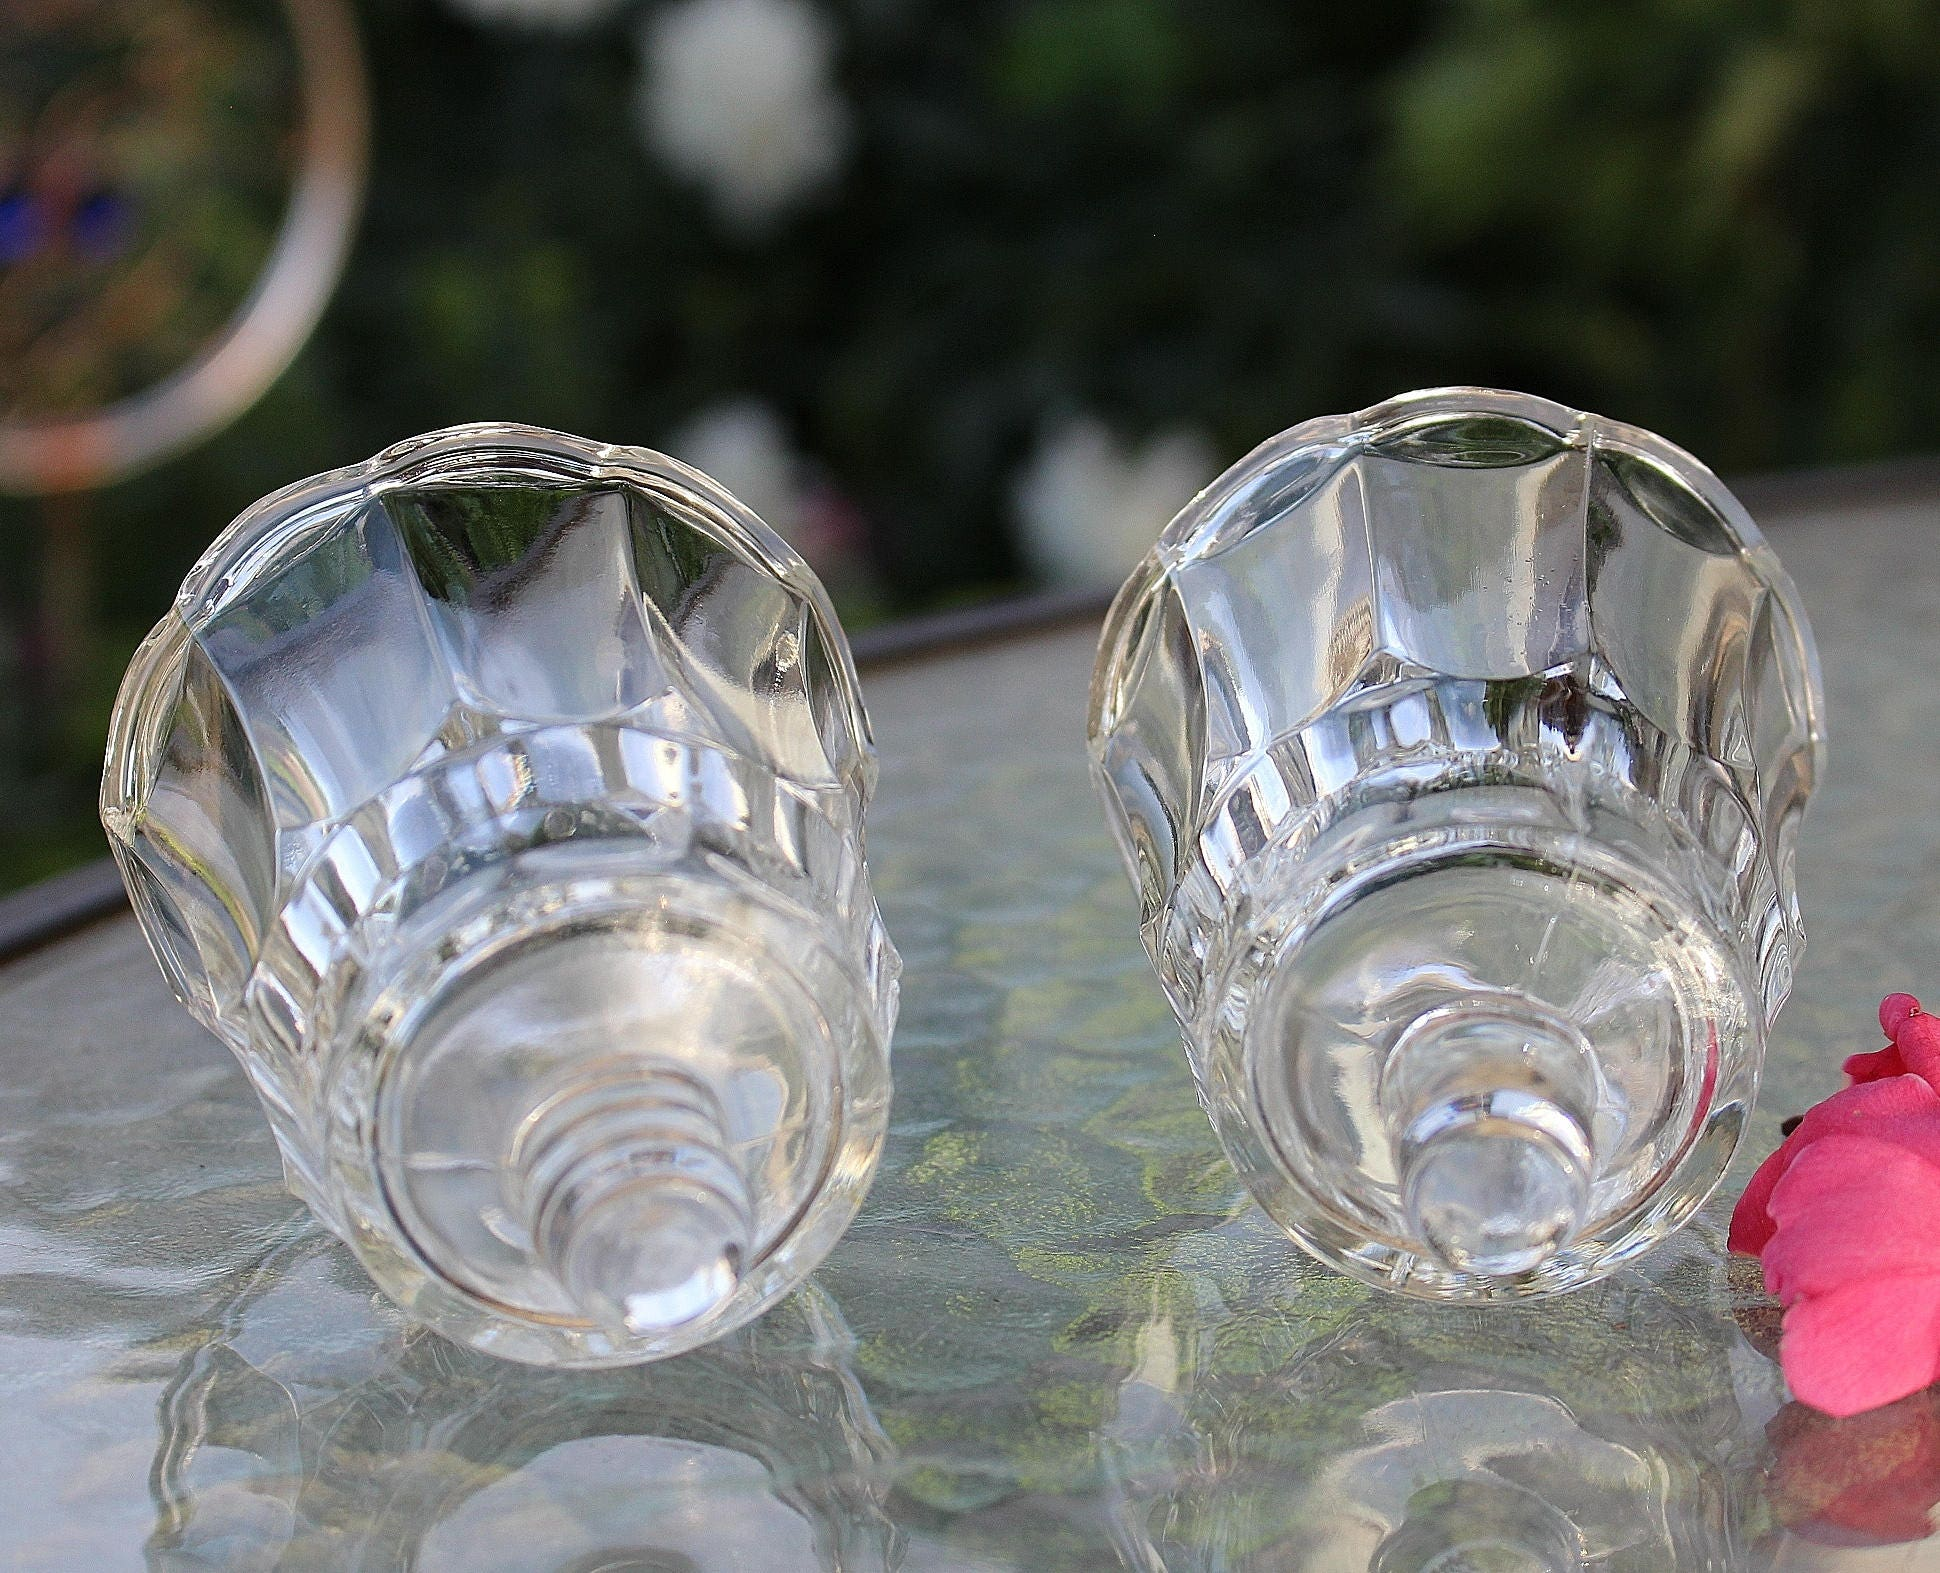 Tulip Shaped Votive Cups Home Interiors (Lot of 2) for Sconces Short Glass STARLIGHT & Tulip Shaped Votive Cups Home Interiors (Lot of 2) for Sconces Short ...